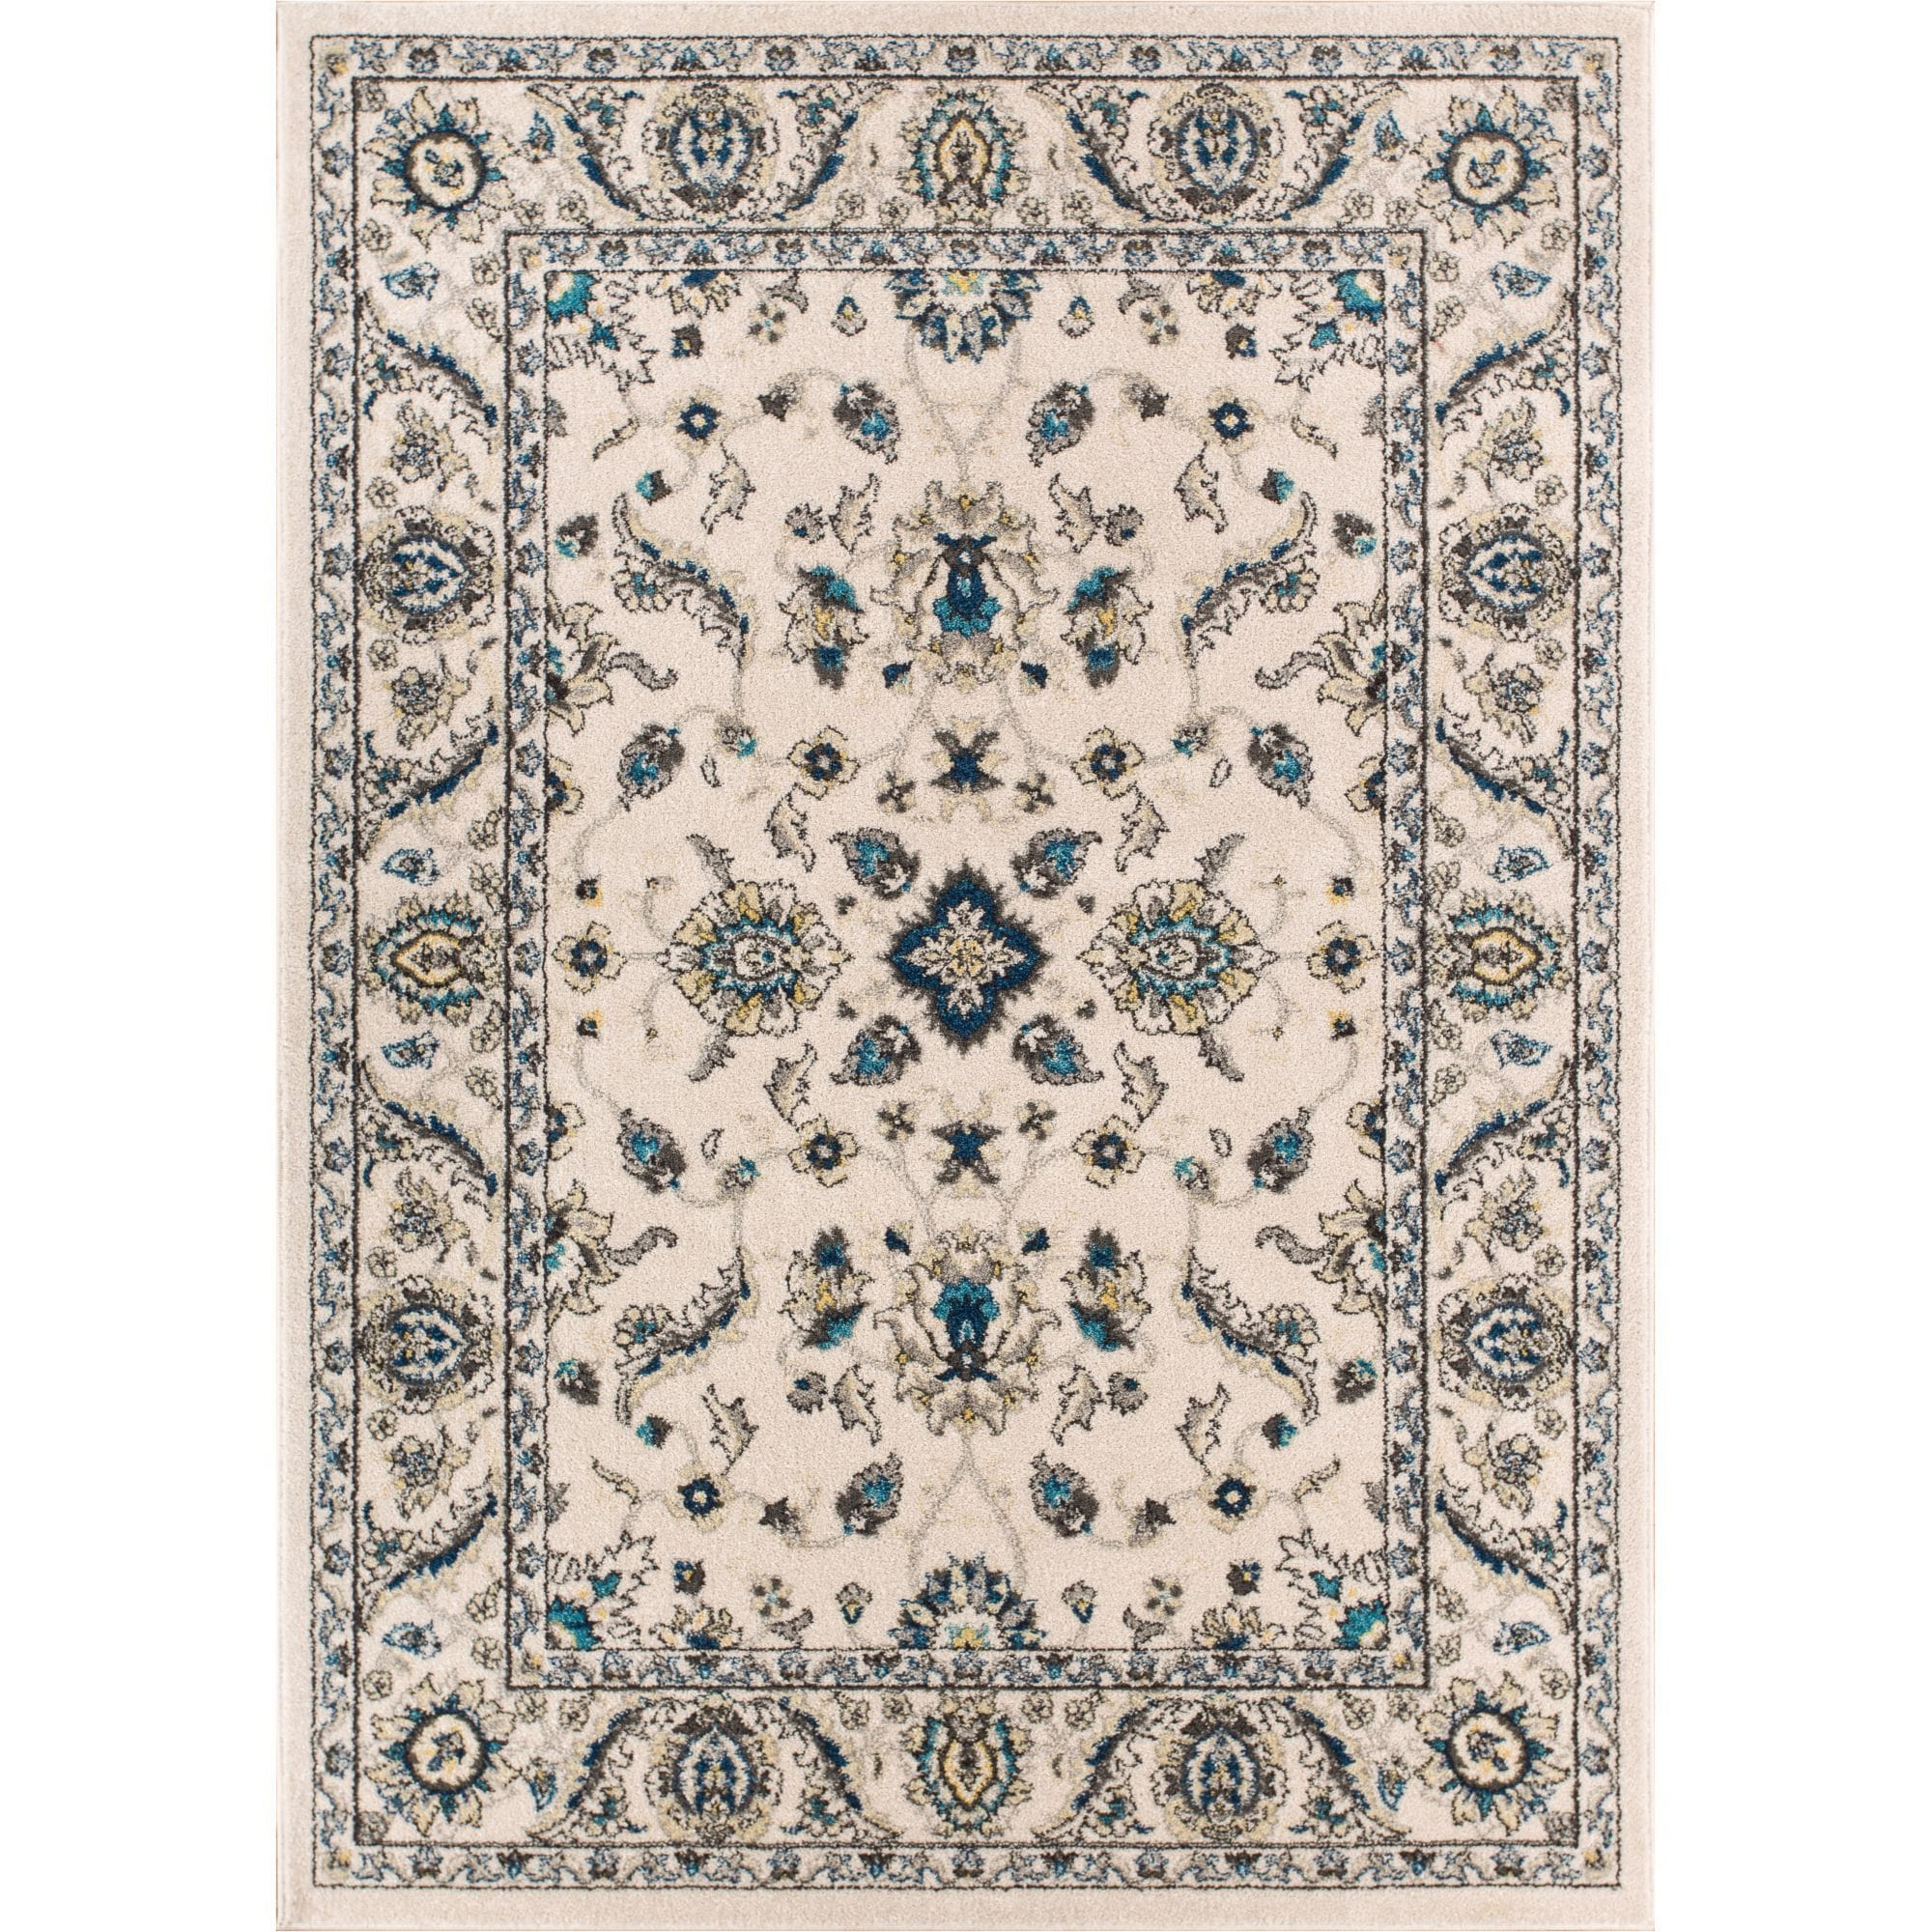 Well Woven Oriental Floral Ivory Blue Area Rug - 710 x 106 (Ivory)